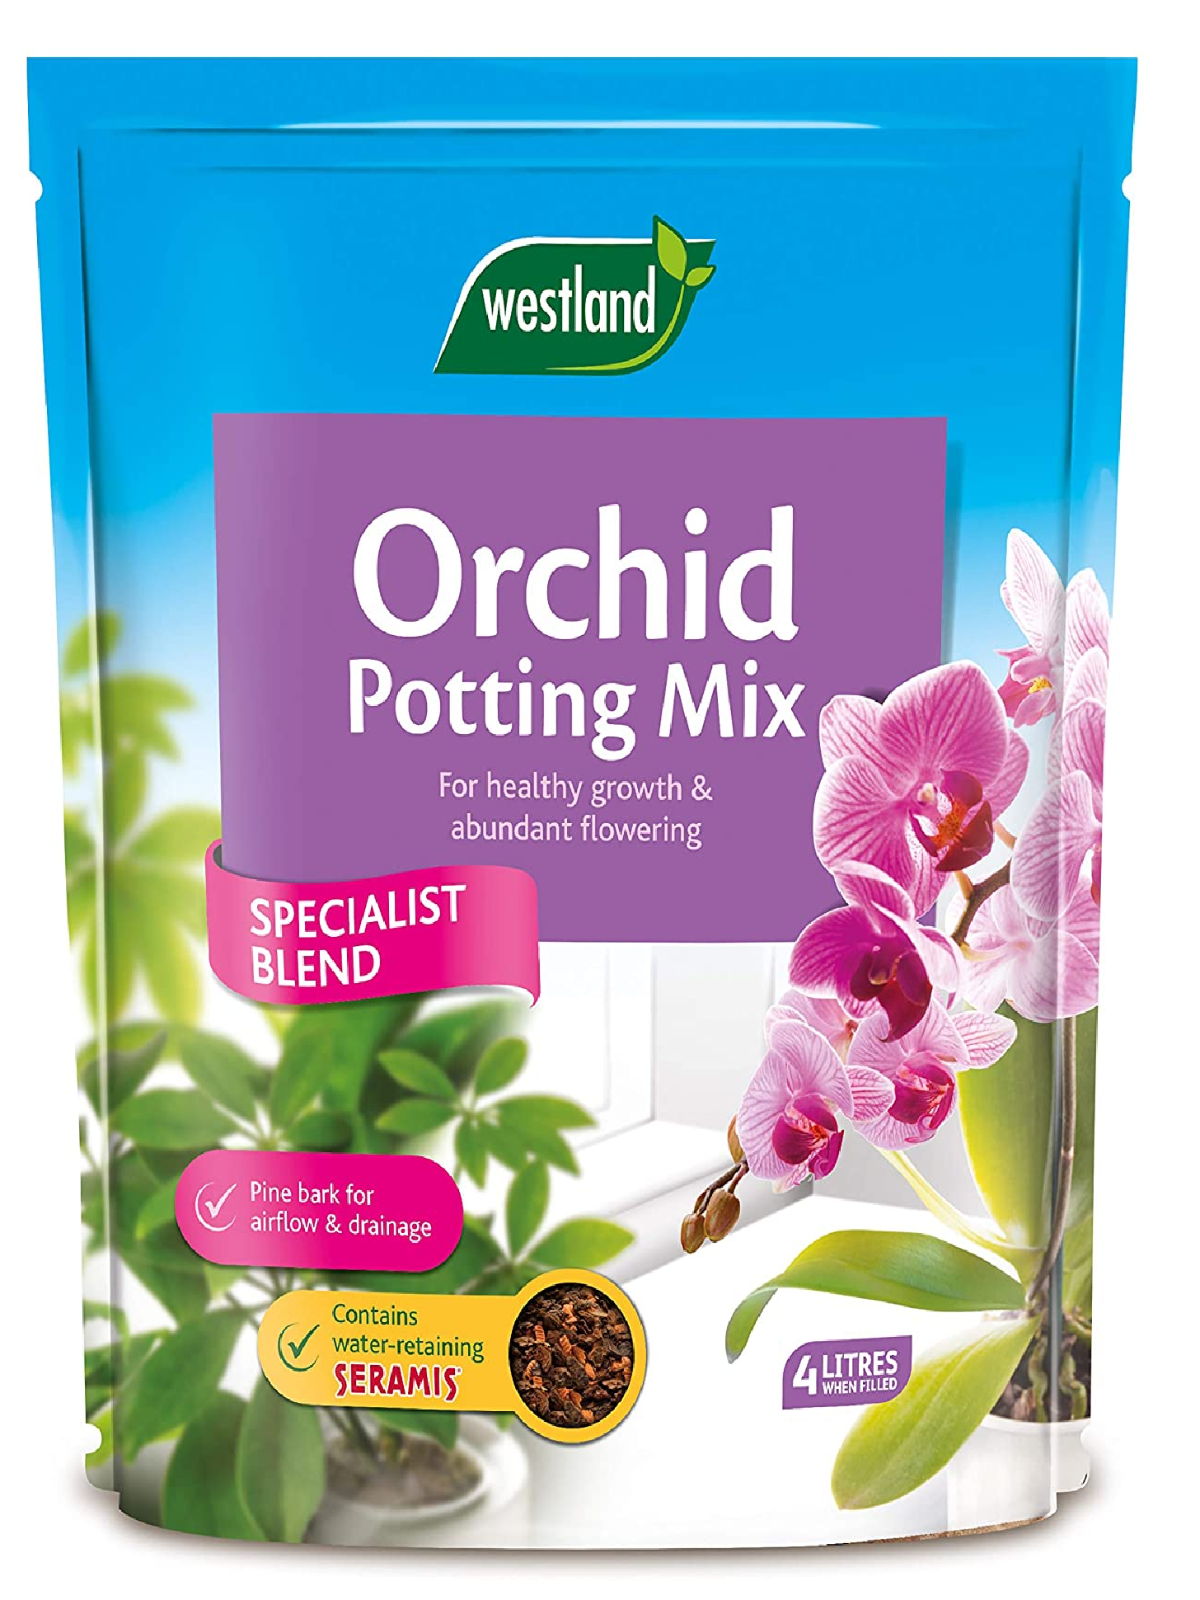 Westland Orchid Potting Compost Mix and Enriched with Seramis, 4 L.